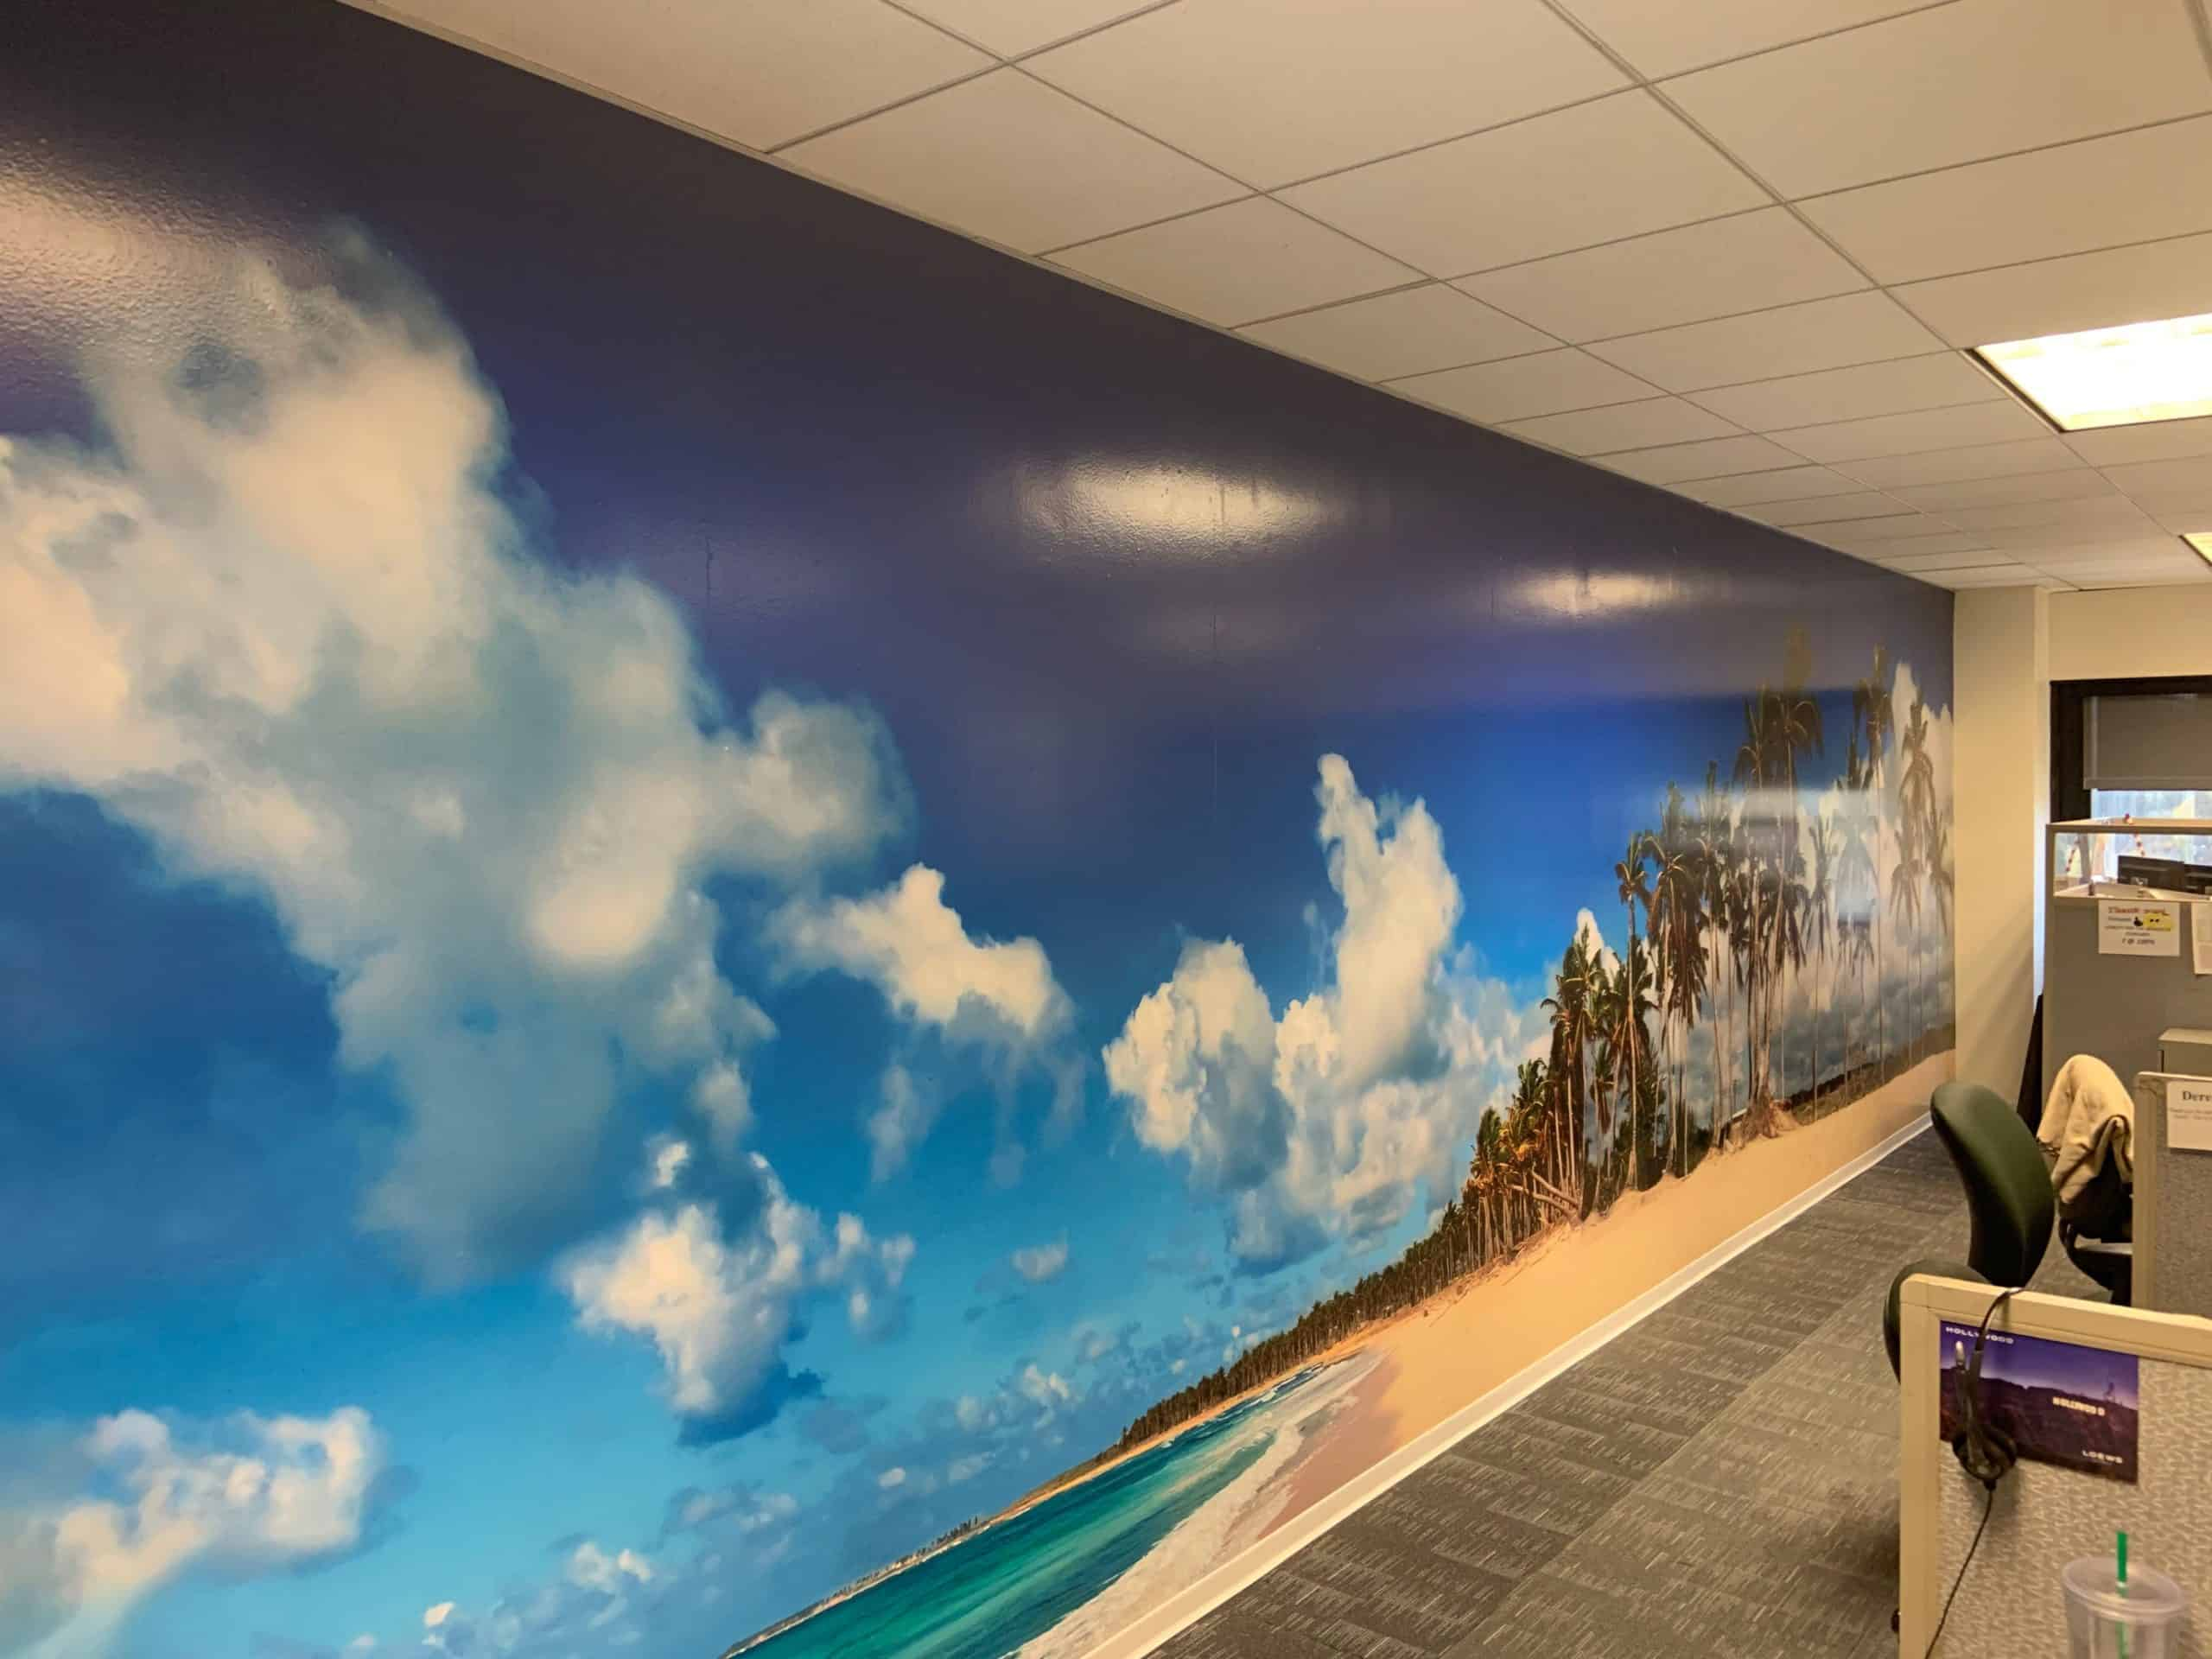 This vibrant beach with clouds picture was turned into a wall mural by Platon Graphics